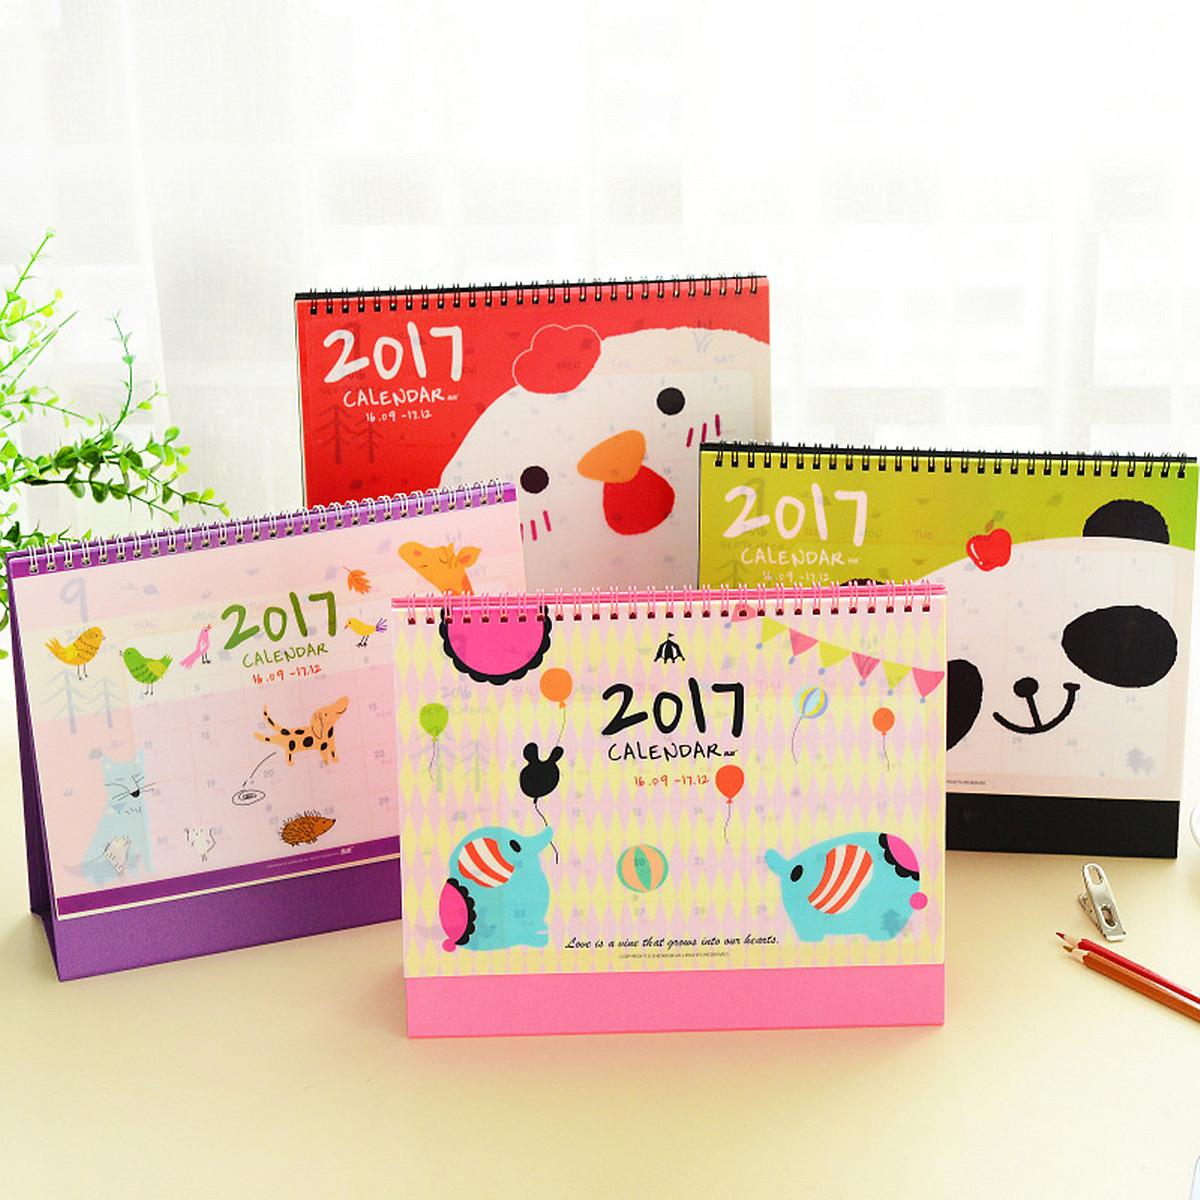 Buy 2017 Cute Cartoon Animal Desk Desktop Flip Stand Calendar Planner for Home Office